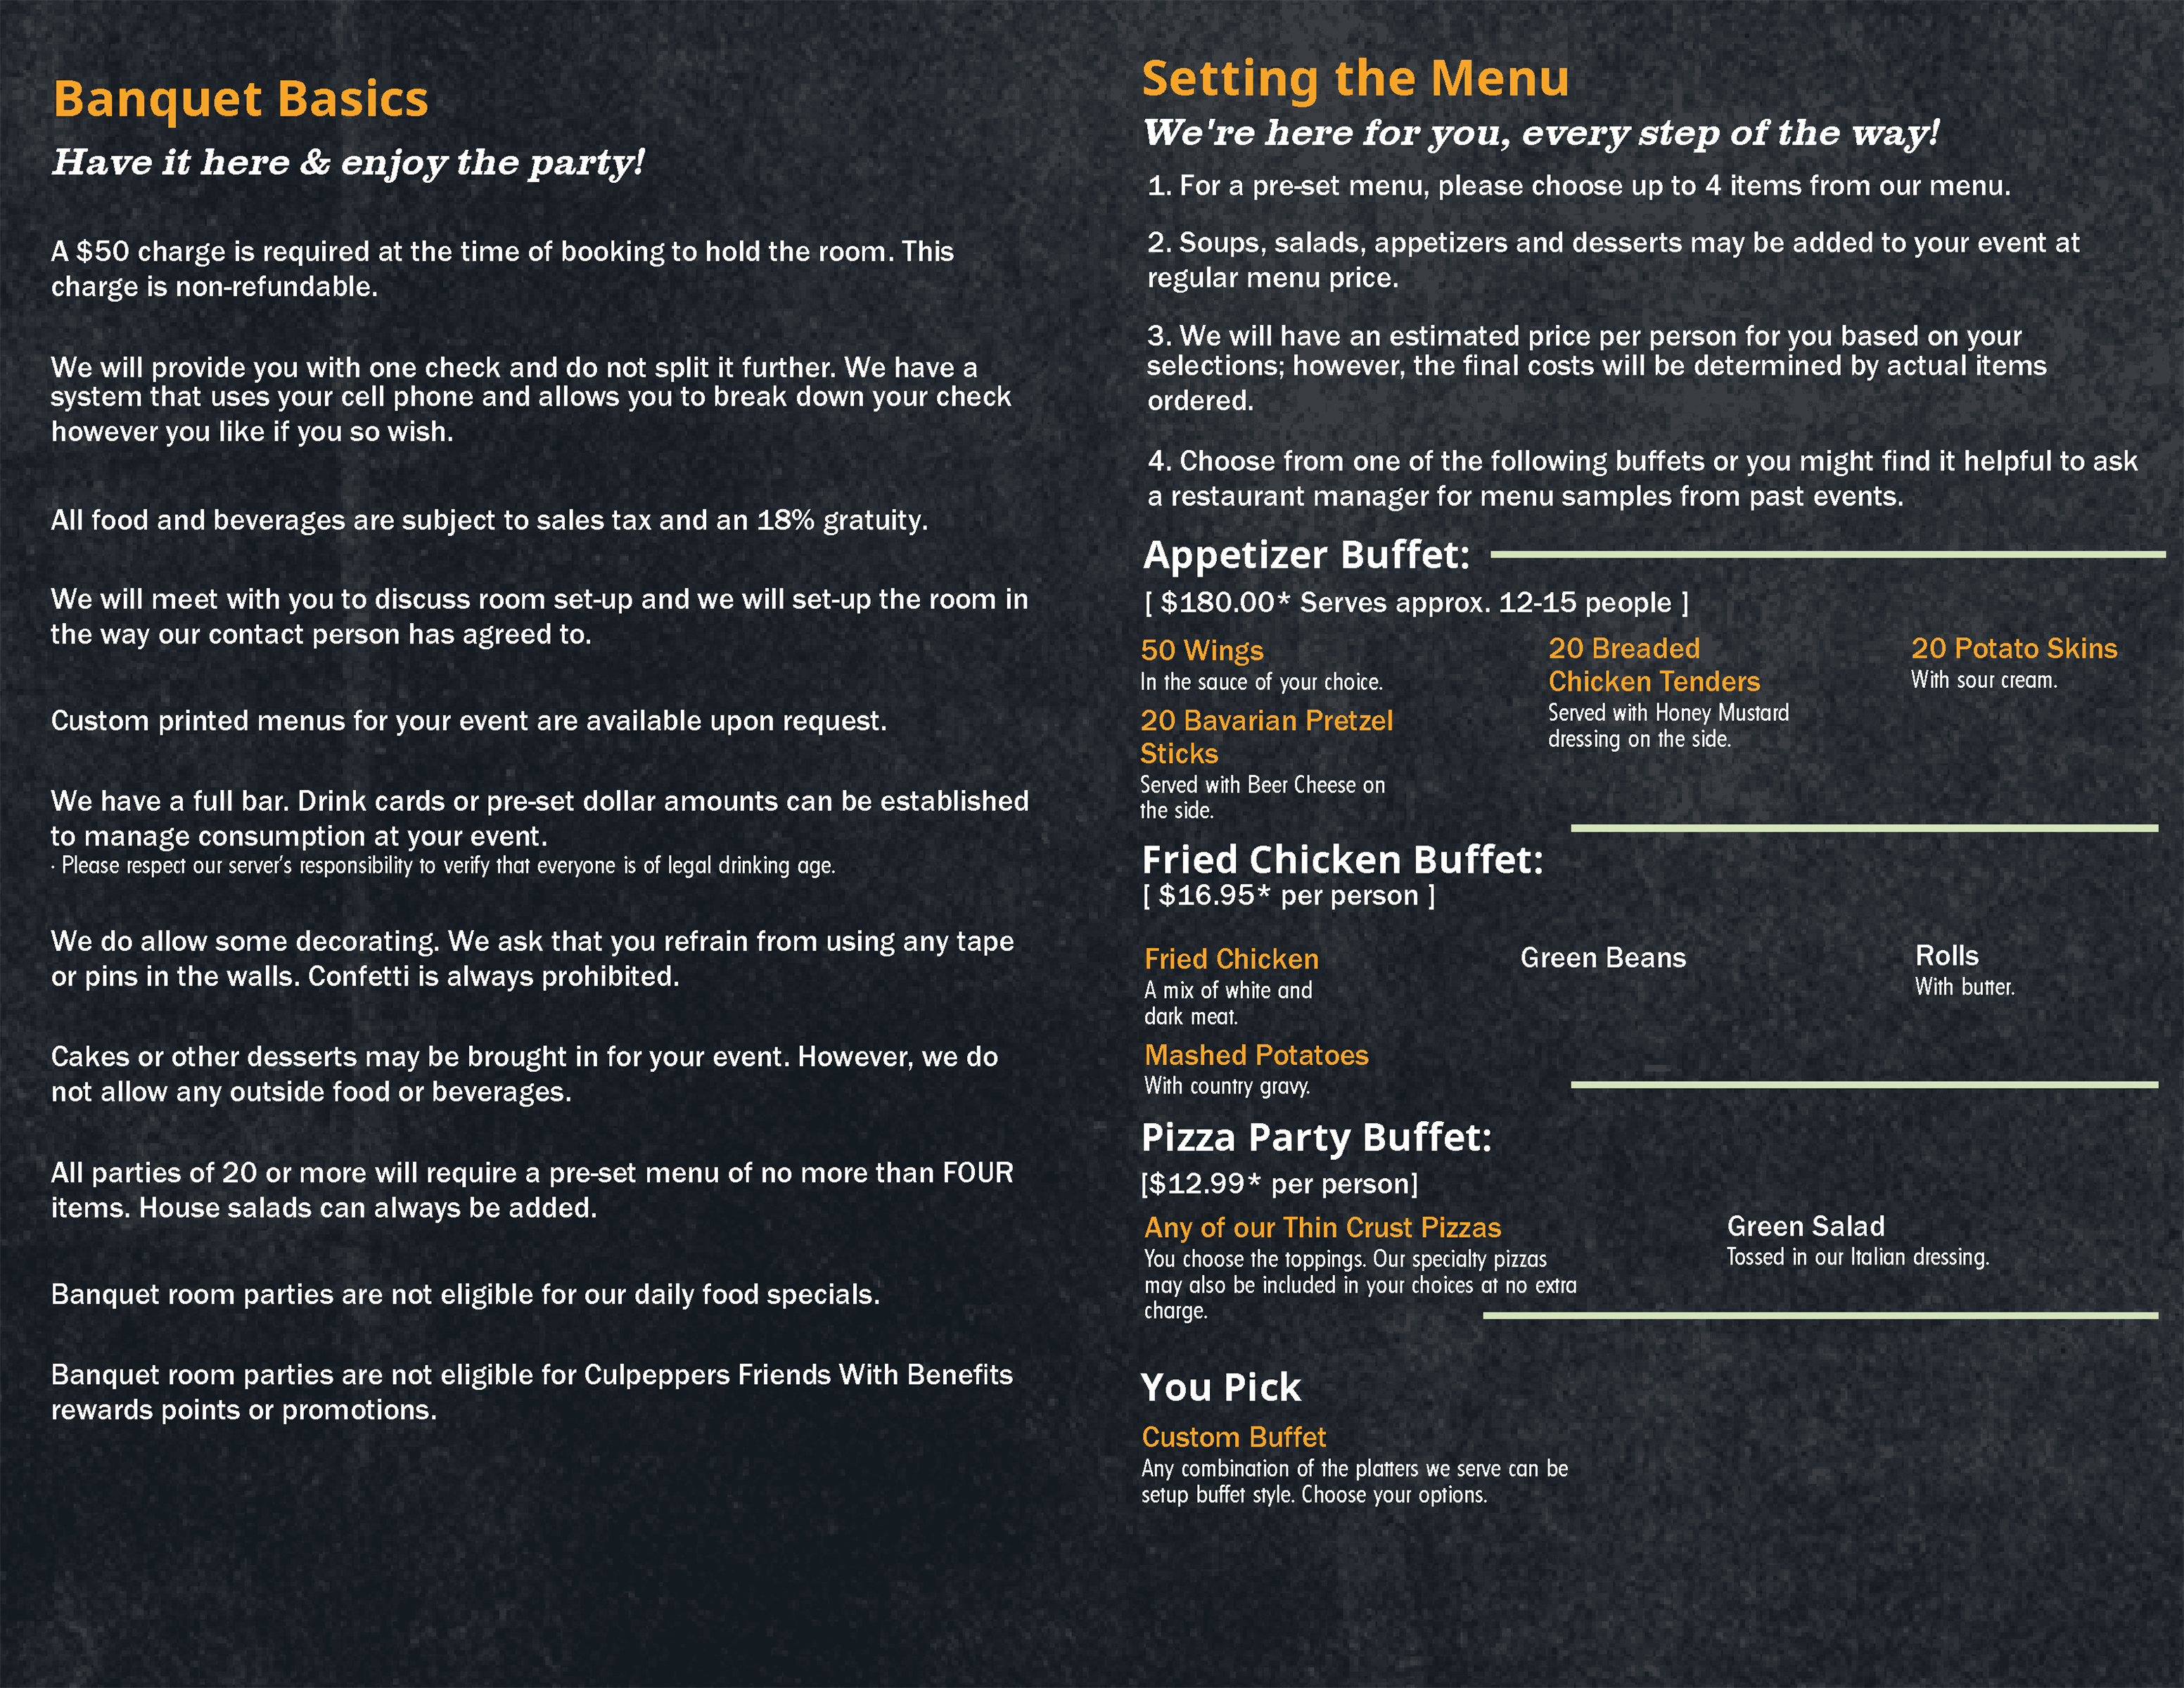 Banquest and Party Menu information flyer